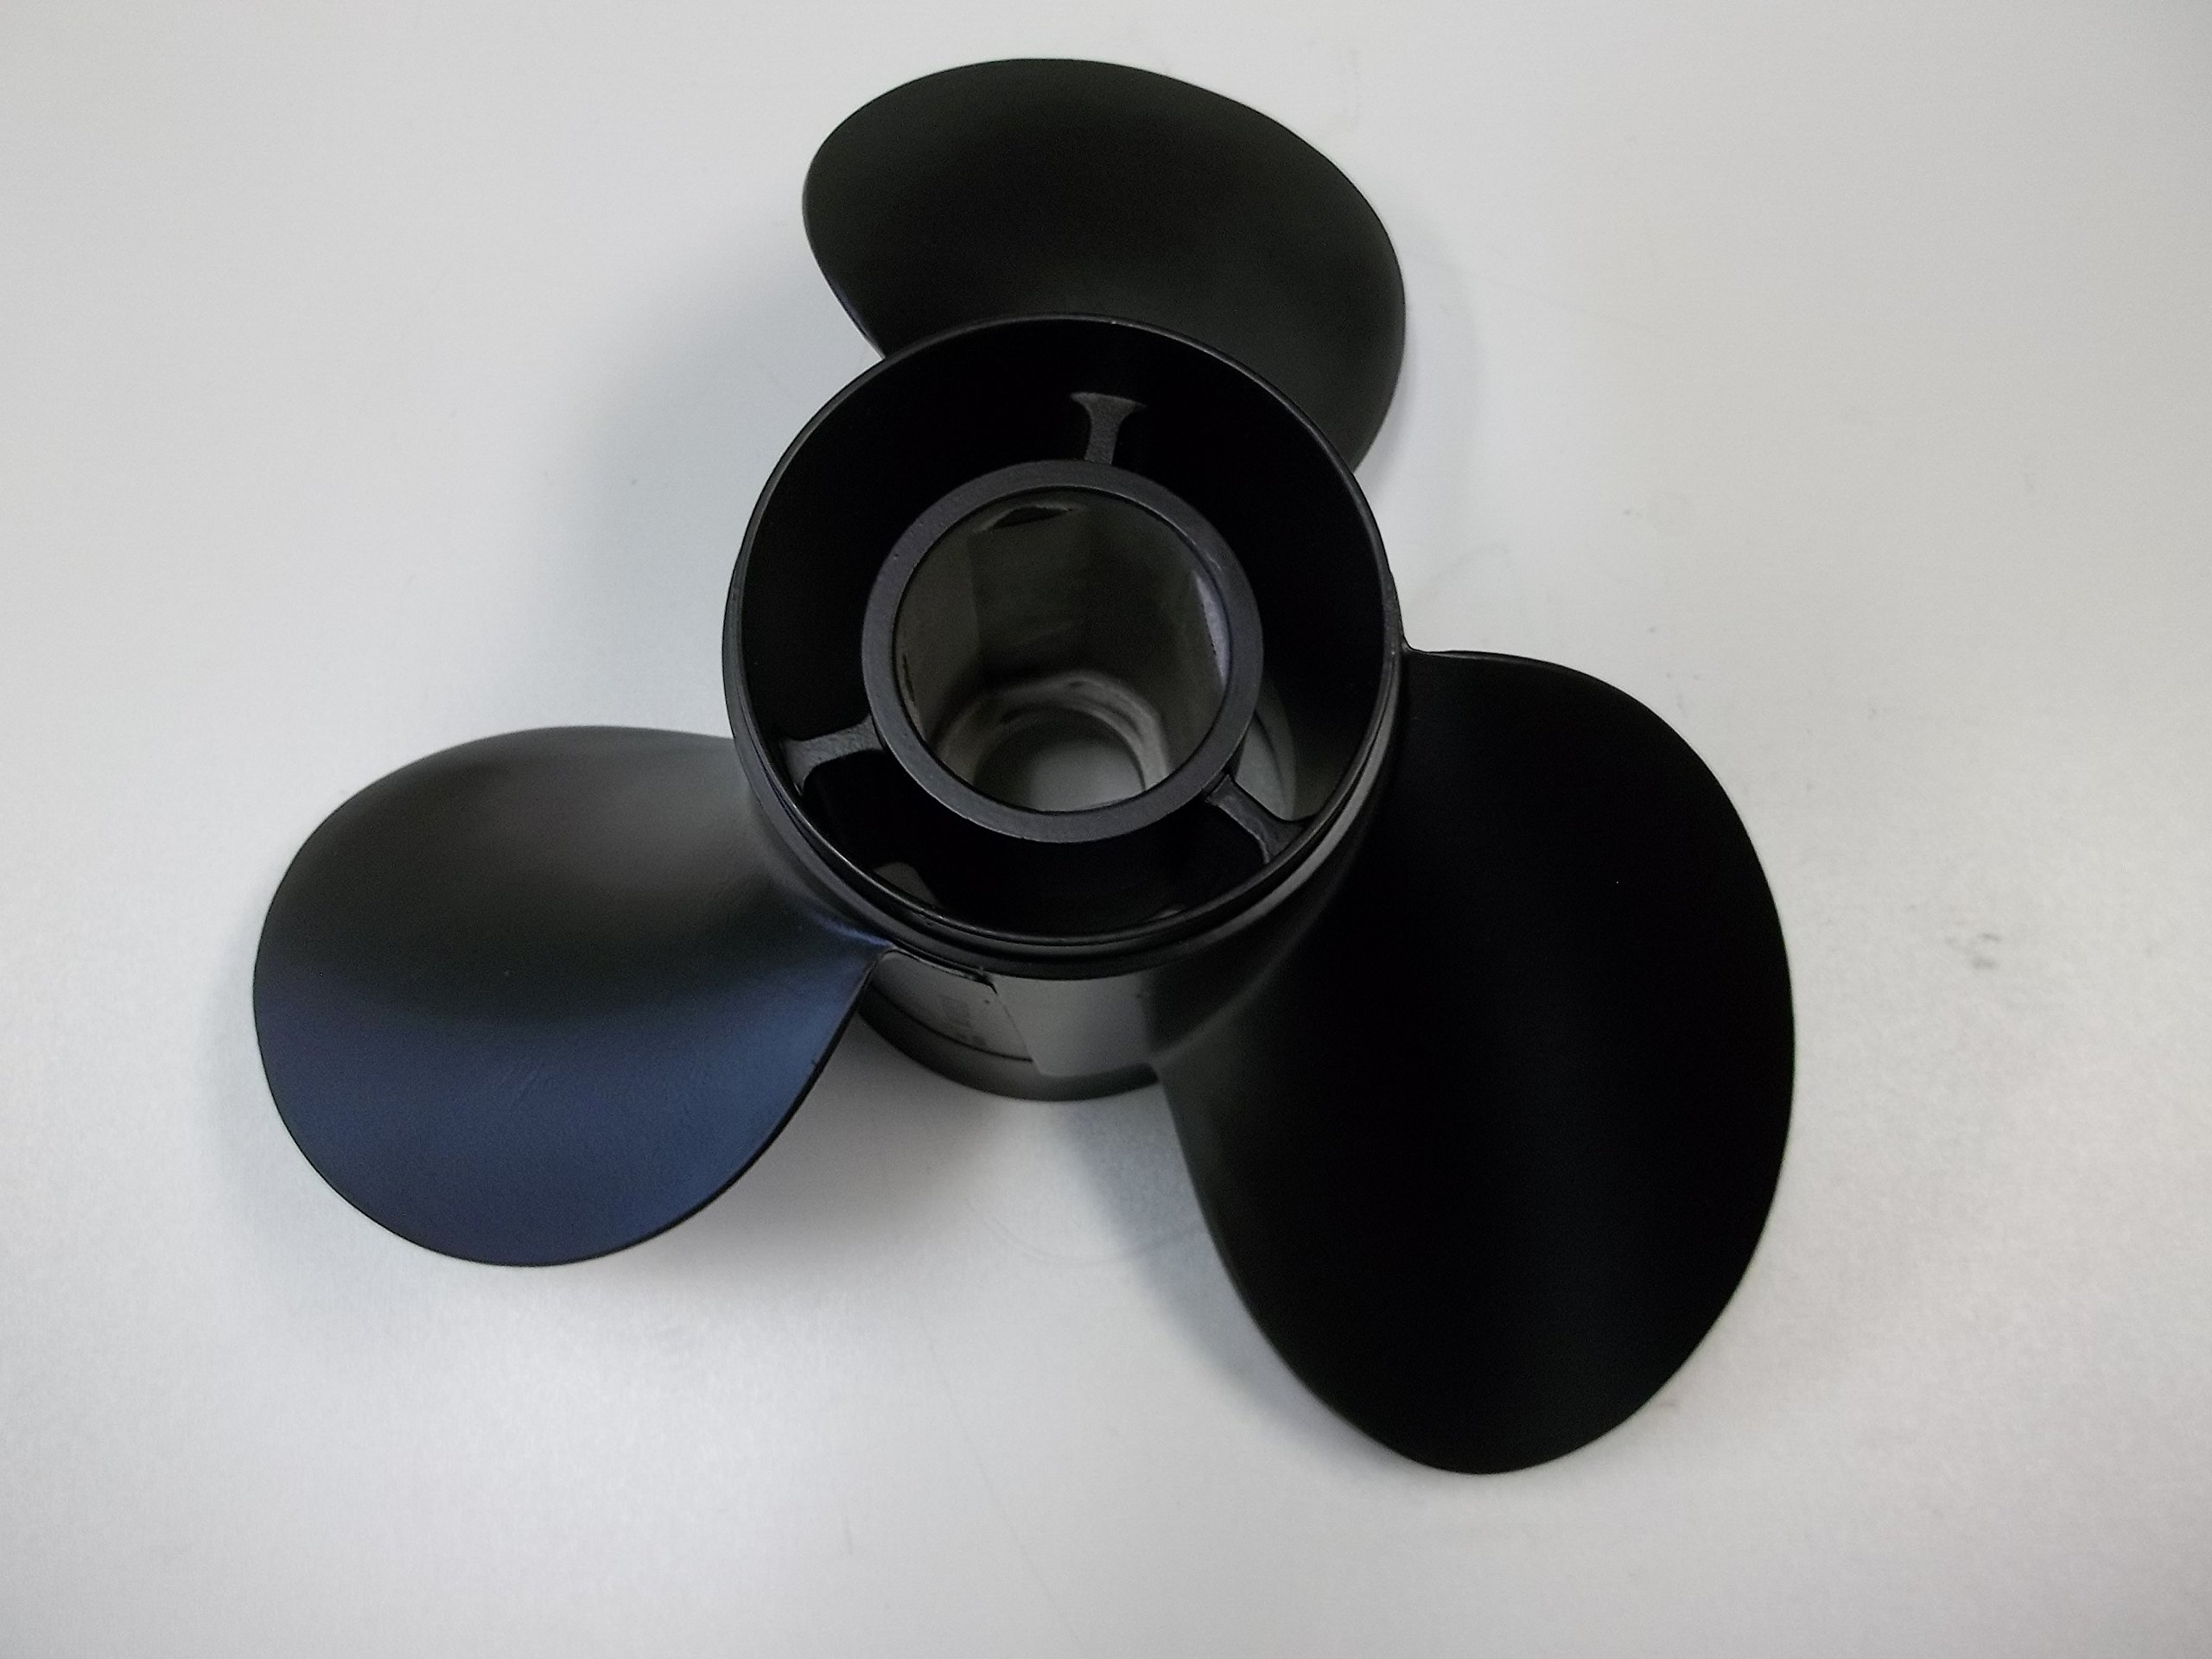 14.5 x 19P Aluminum Propeller for Mercruiser, Volvo Penta, and other applications